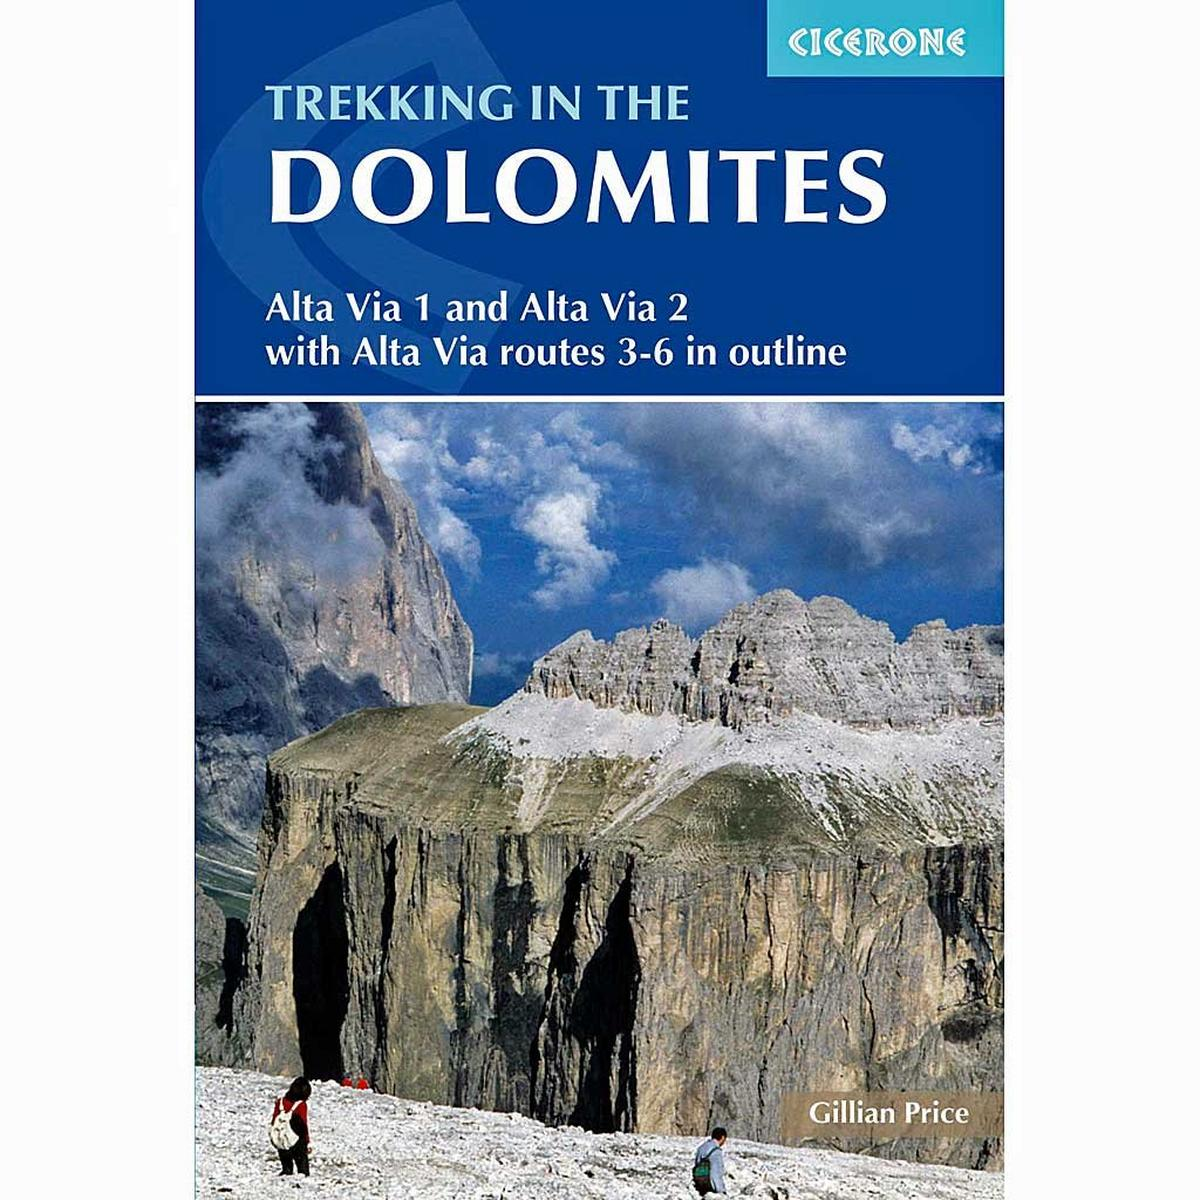 Cicerone Guide Book: Trekking in the Dolomites